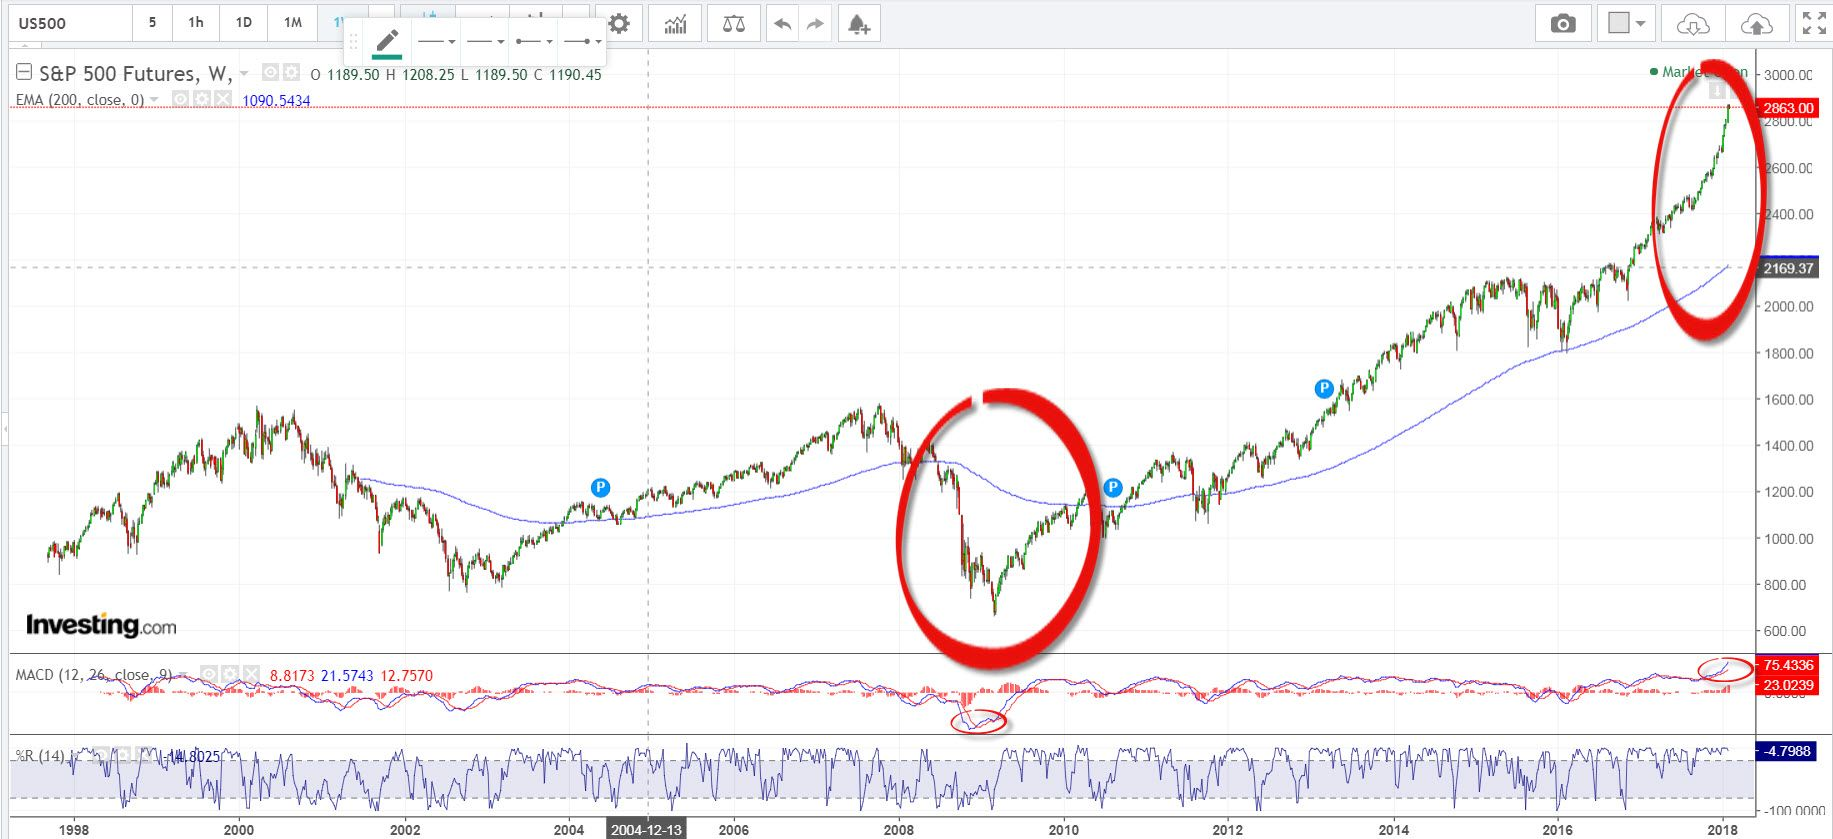 Has Sp500 Reached The Top When Will The Current Uptrend Stop